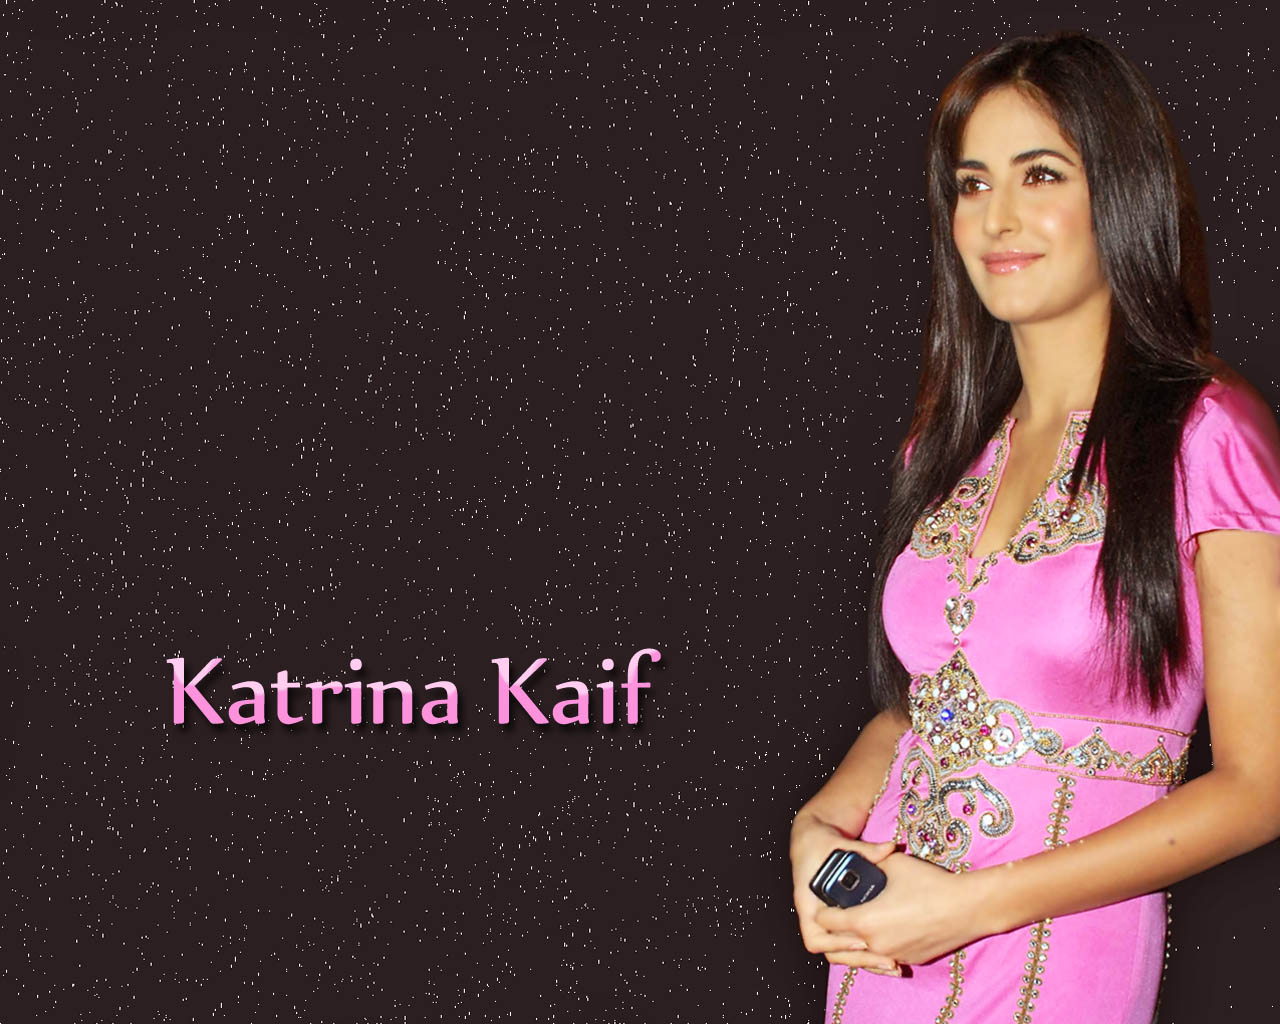 Katrina Kaif Sexy Breast Pictures And Wallpapers